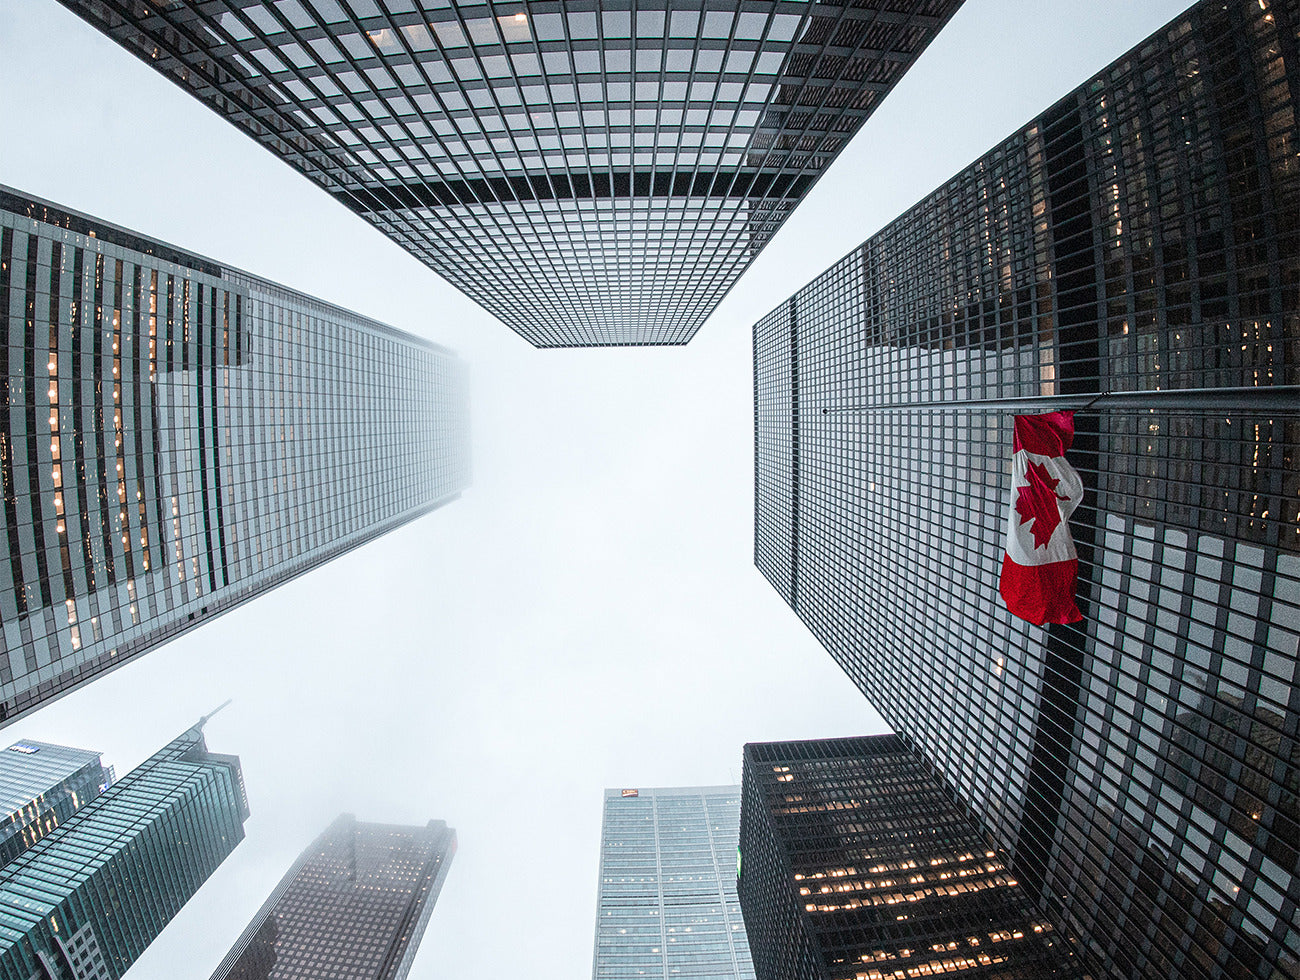 Exterior of buildings with the canadian flag